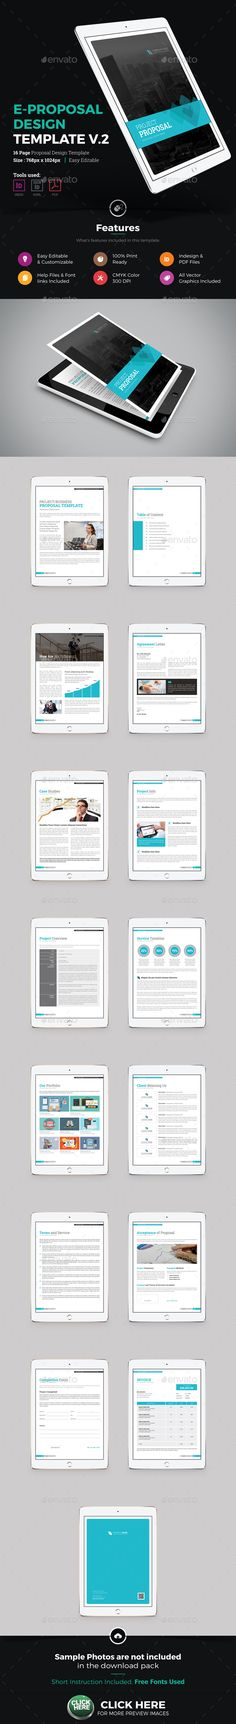 Pin by Design Pizza on Design Templates Pinterest Template